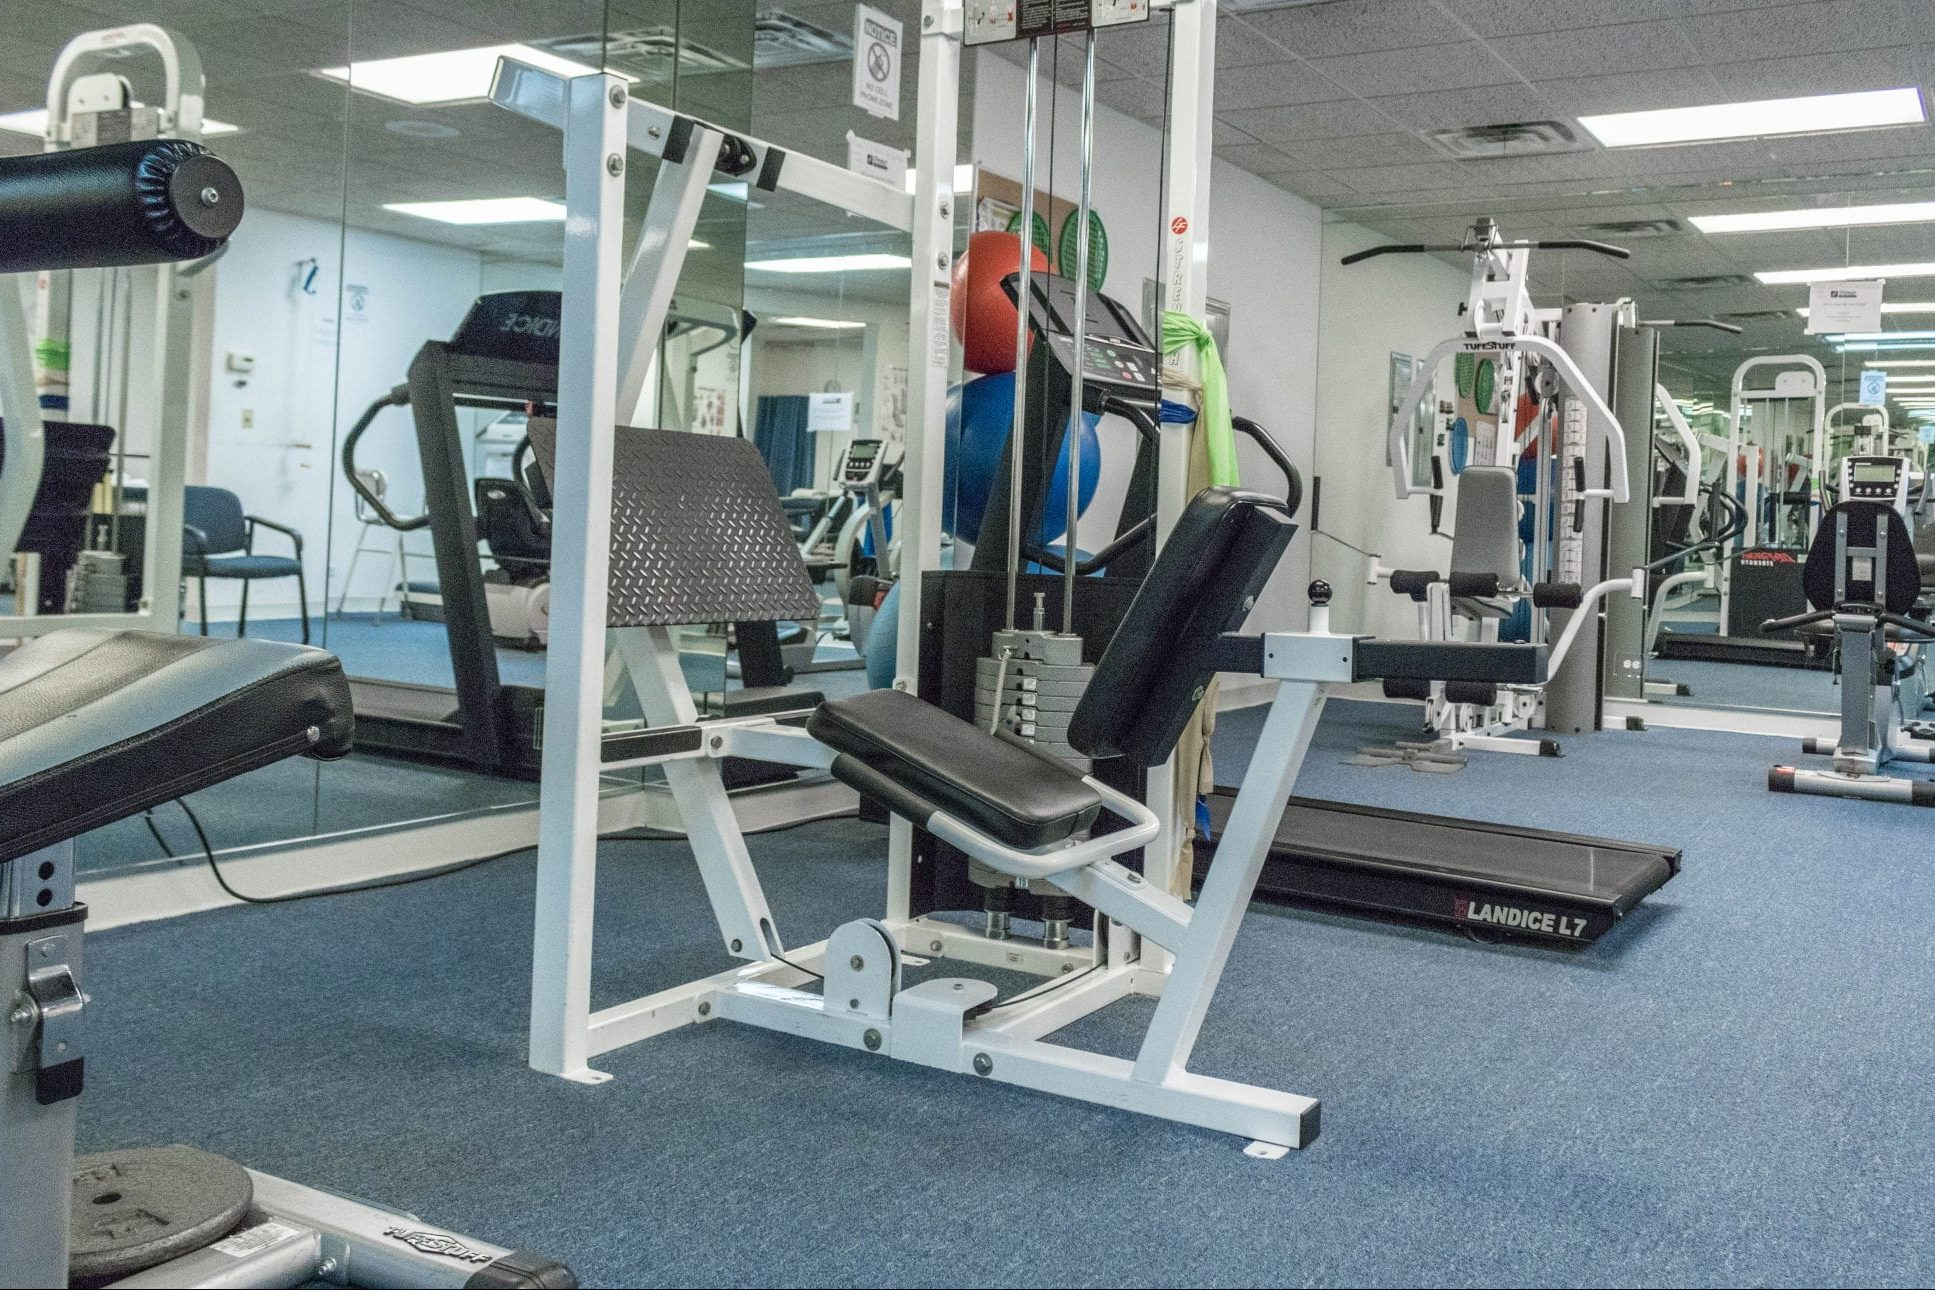 Premier-Physical-Therapy-Evergreen-Park-Location-e1593366123677